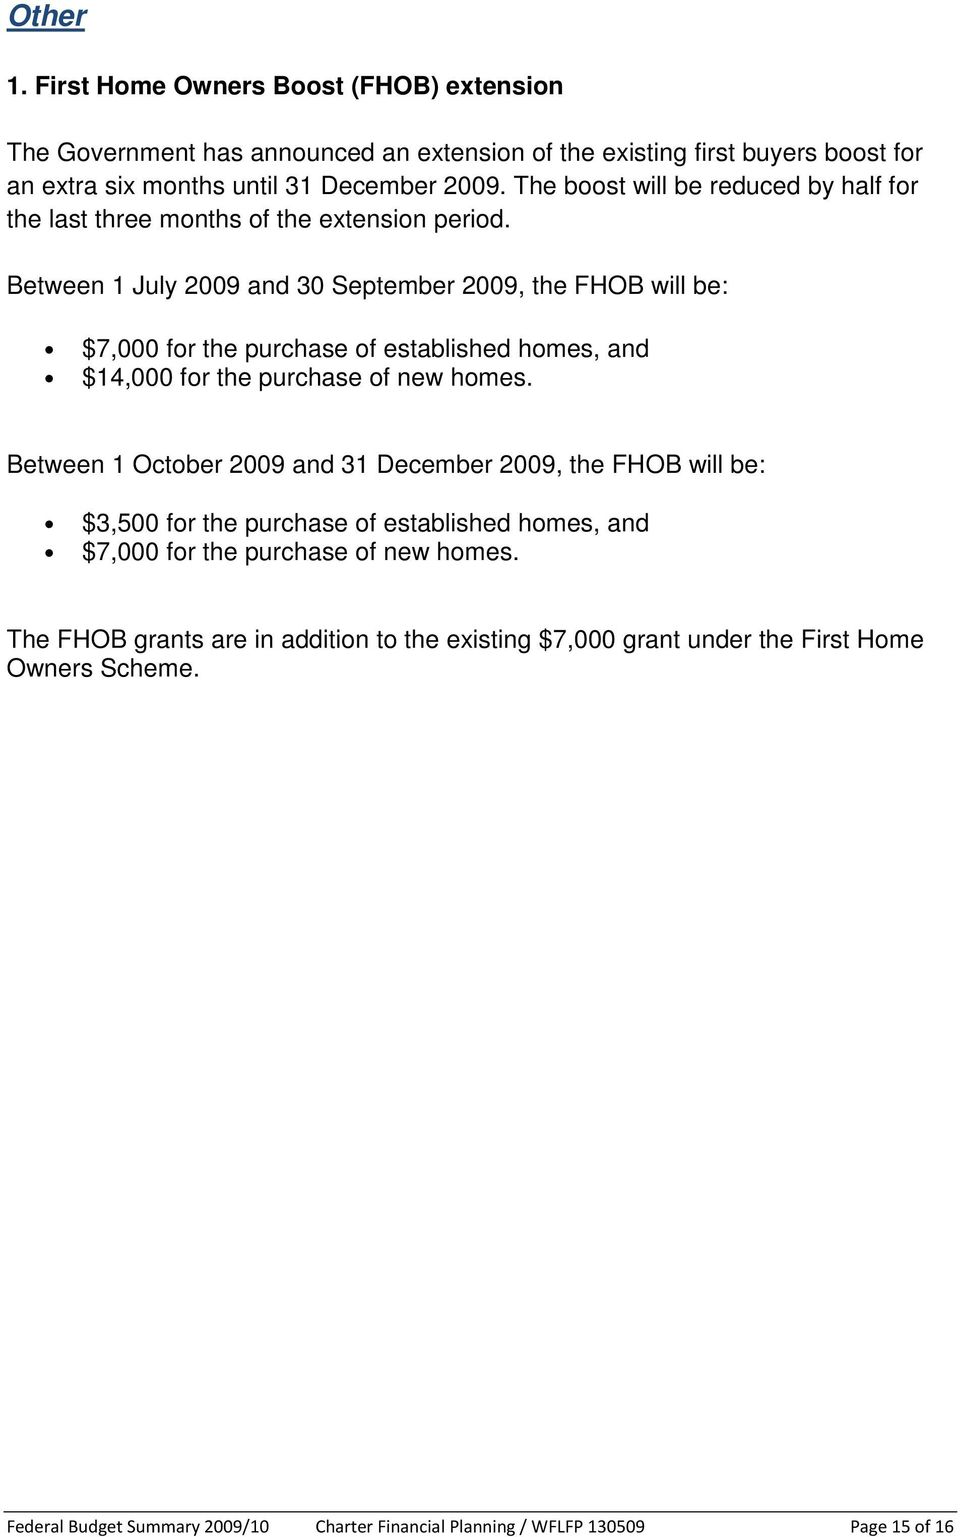 Between 1 July 2009 and 30 September 2009, the FHOB will be: $7,000 for the purchase of established homes, and $14,000 for the purchase of new homes.